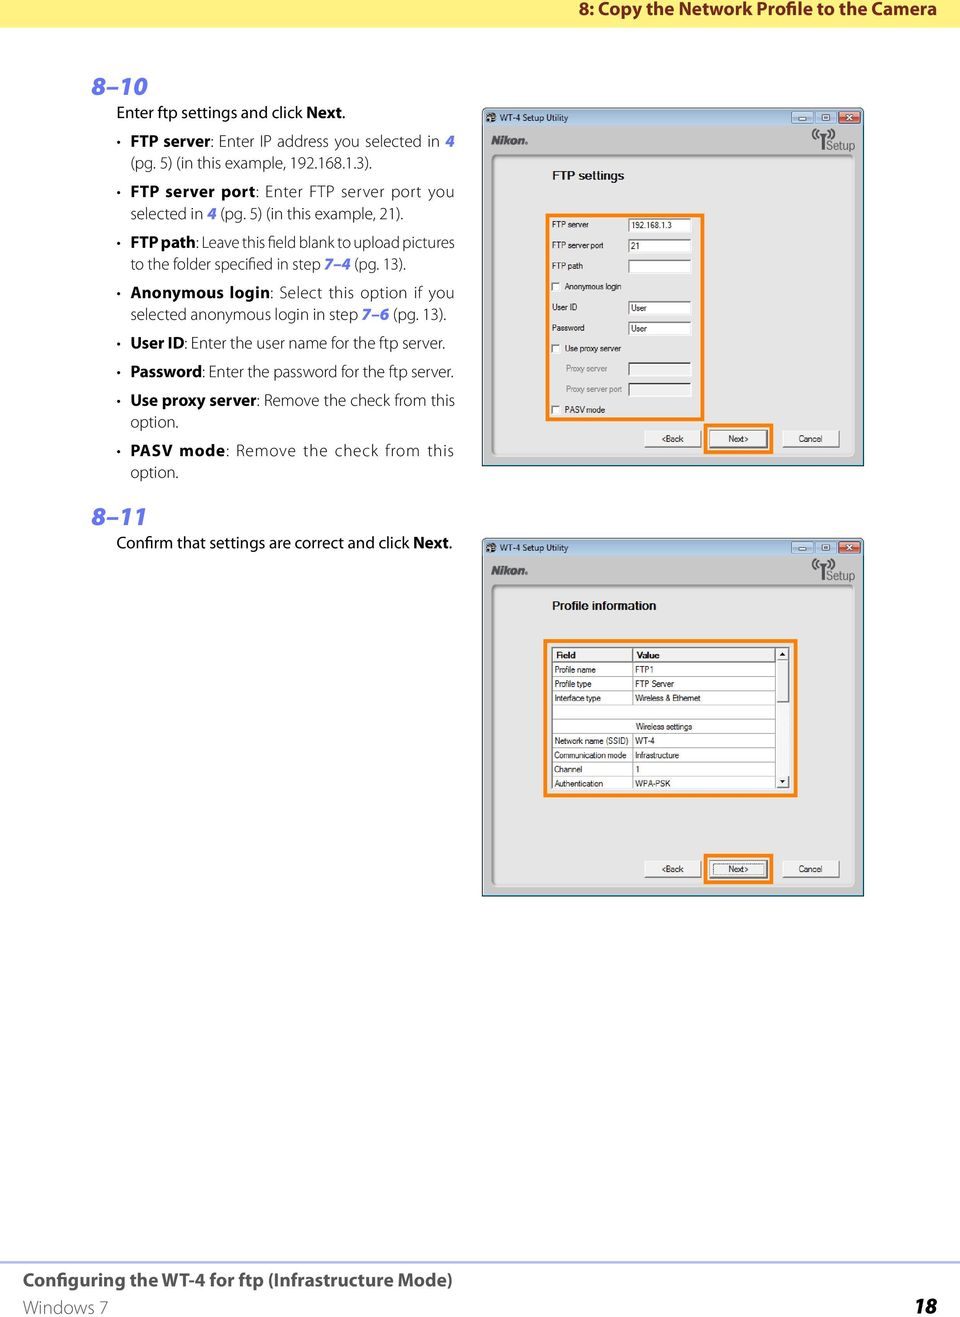 FTP path: Leave this field blank to upload pictures to the folder specified in step 7 4 (pg. 13).